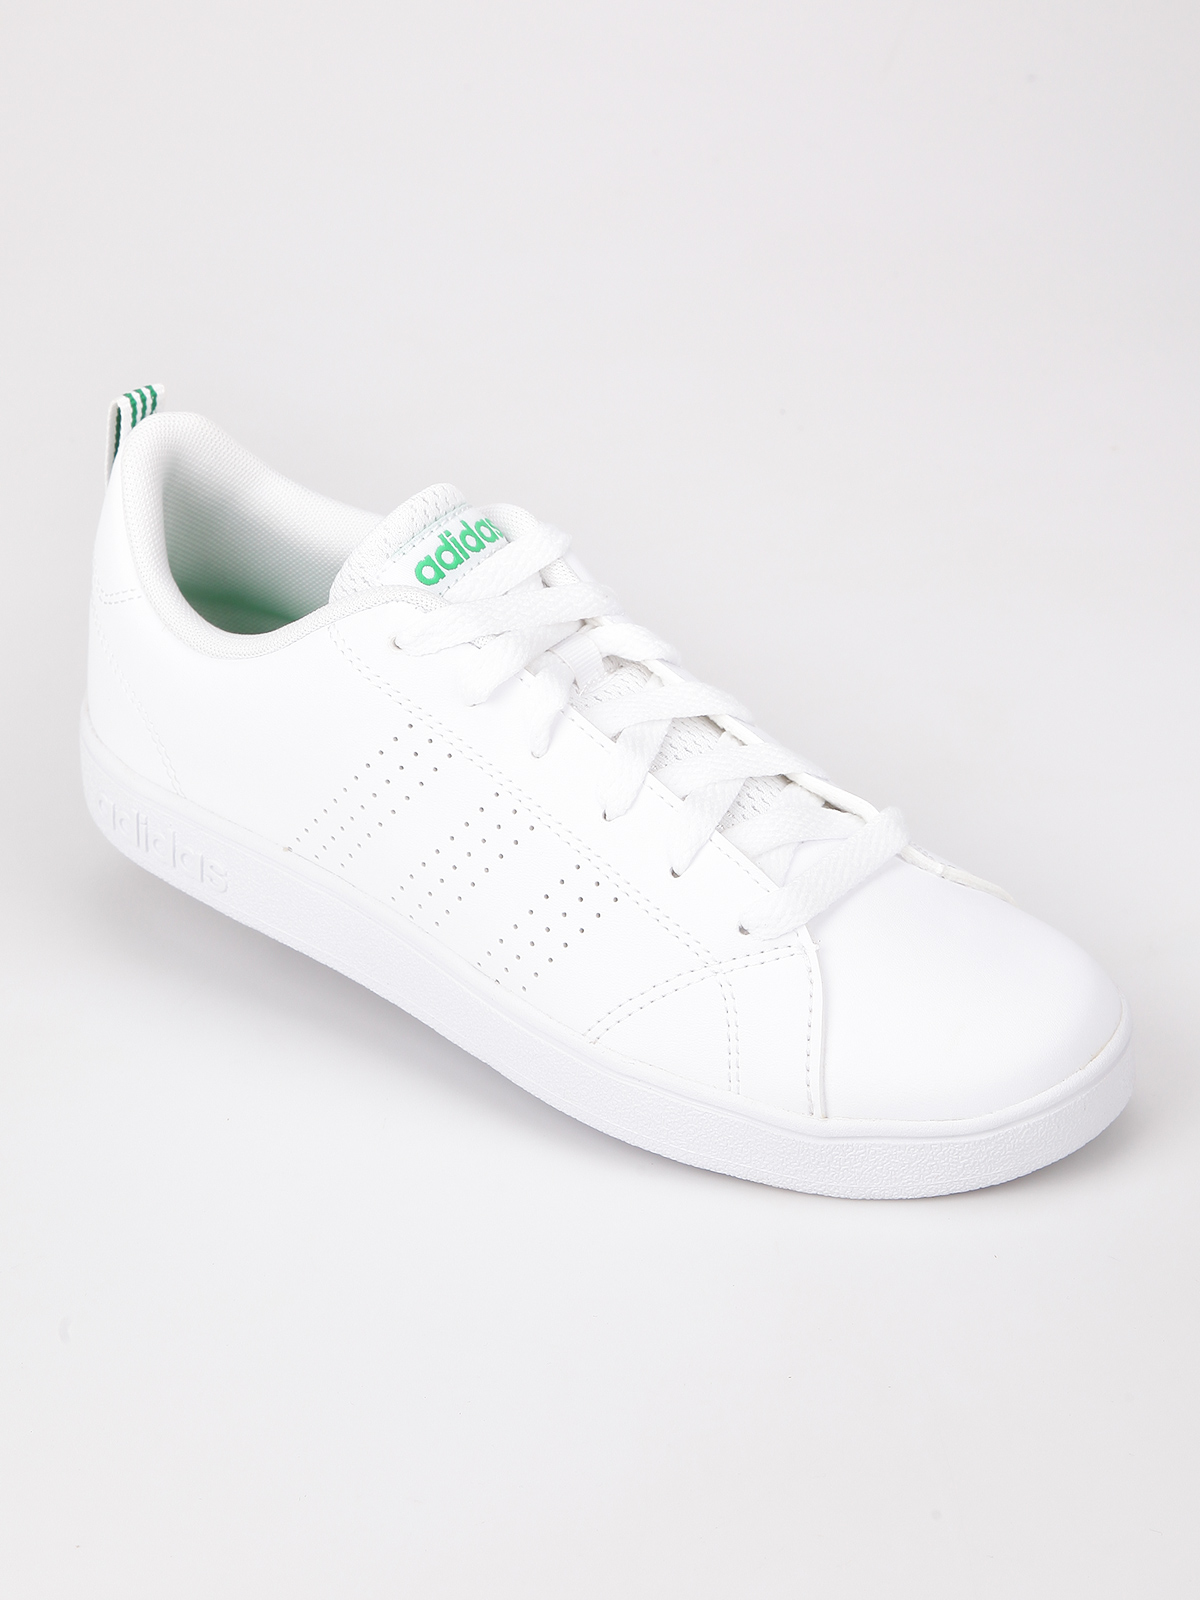 adidas flat sole shoes, OFF 77%,Best